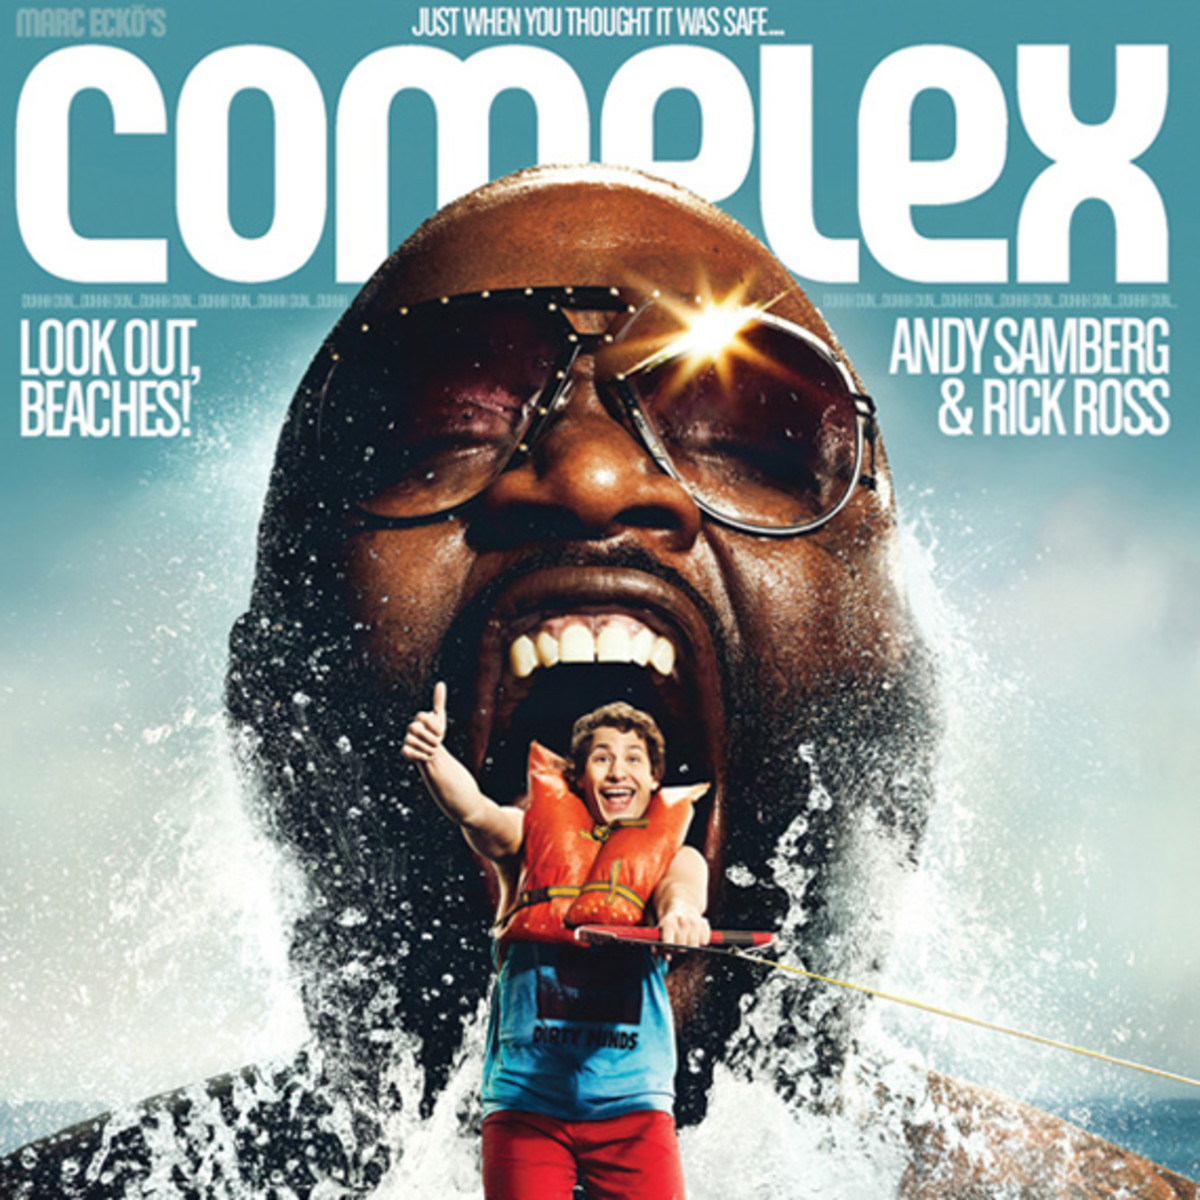 rick-ross-andy-samberg-complex-cover-01